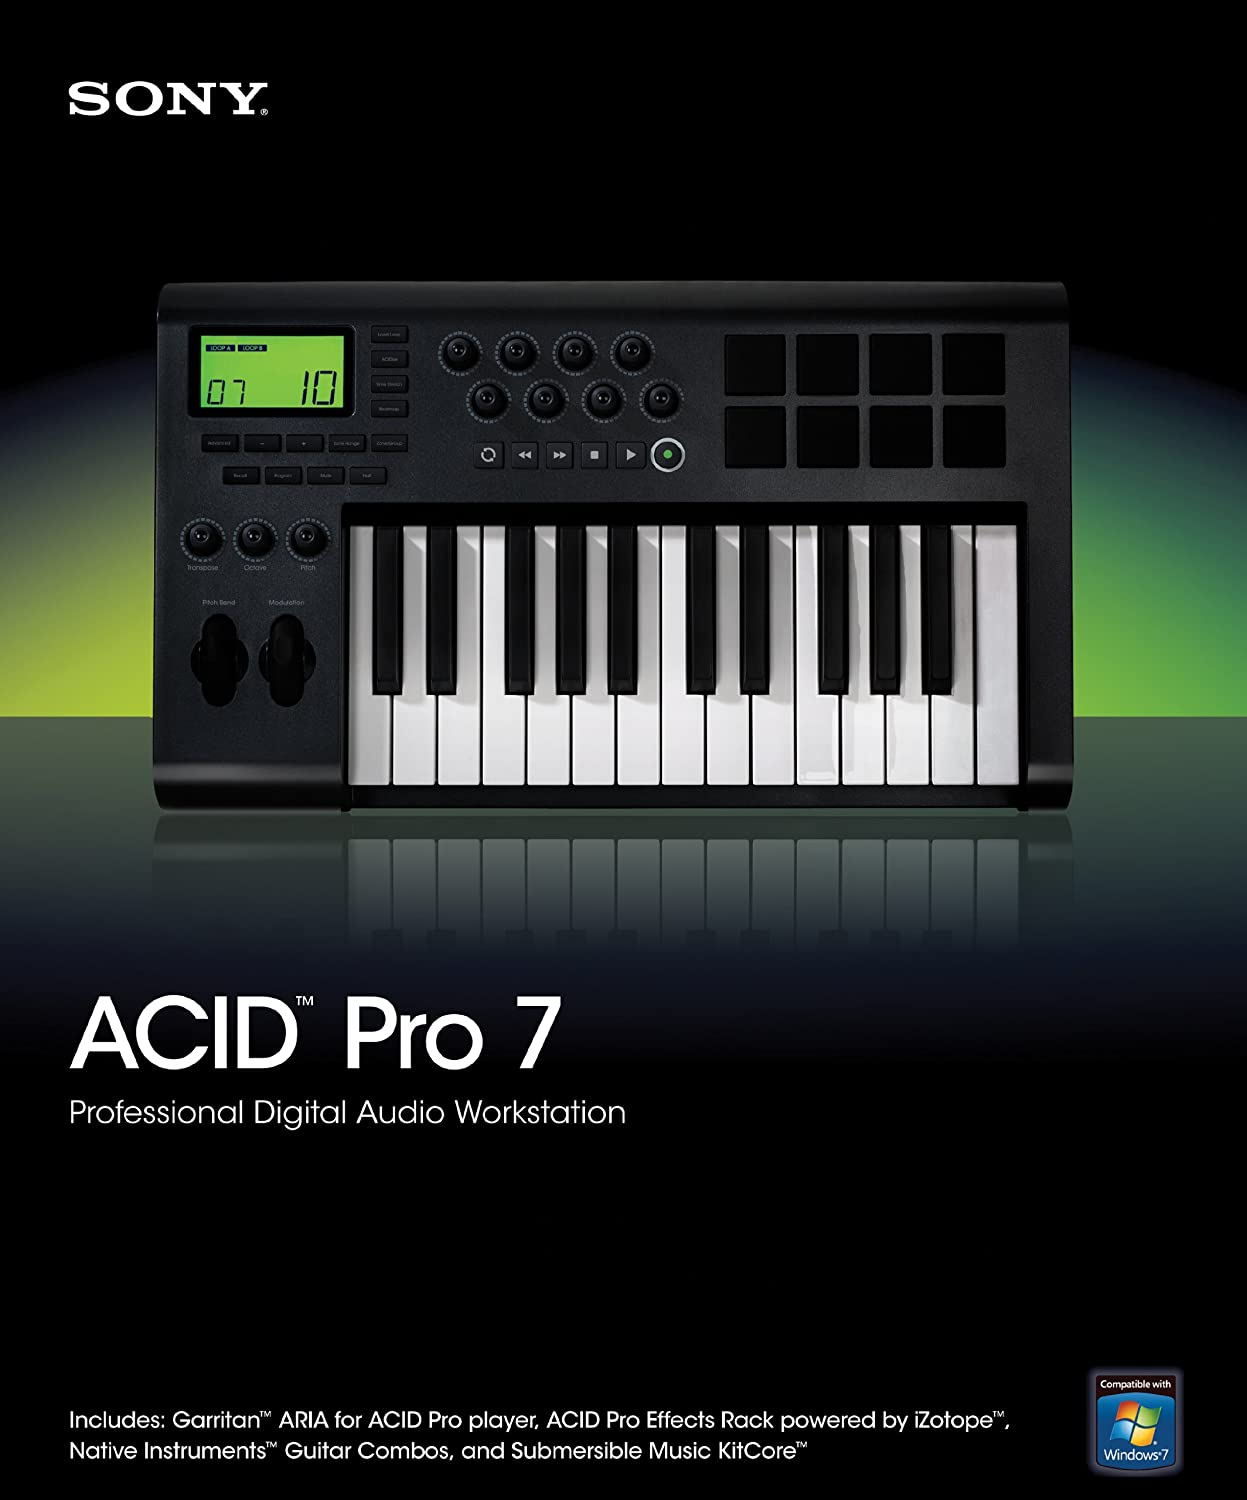 Sony Acid Pro 7 | Cakewalk Forums